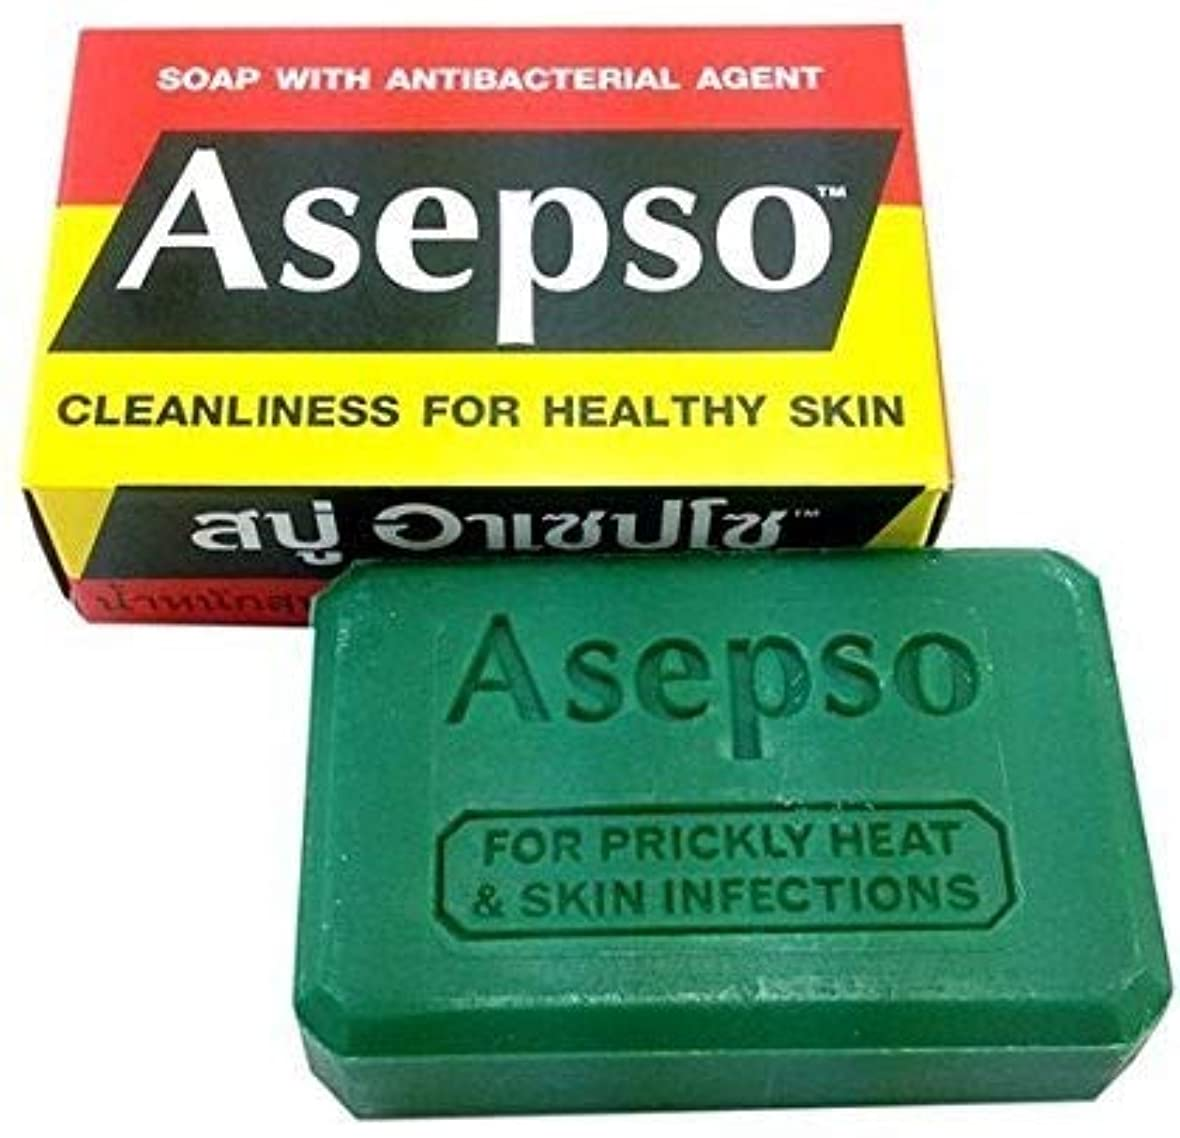 音楽を聴く昆虫洋服Ni Yom Thai shop Asepso Soap with Antibacterial Agent 80 Grams